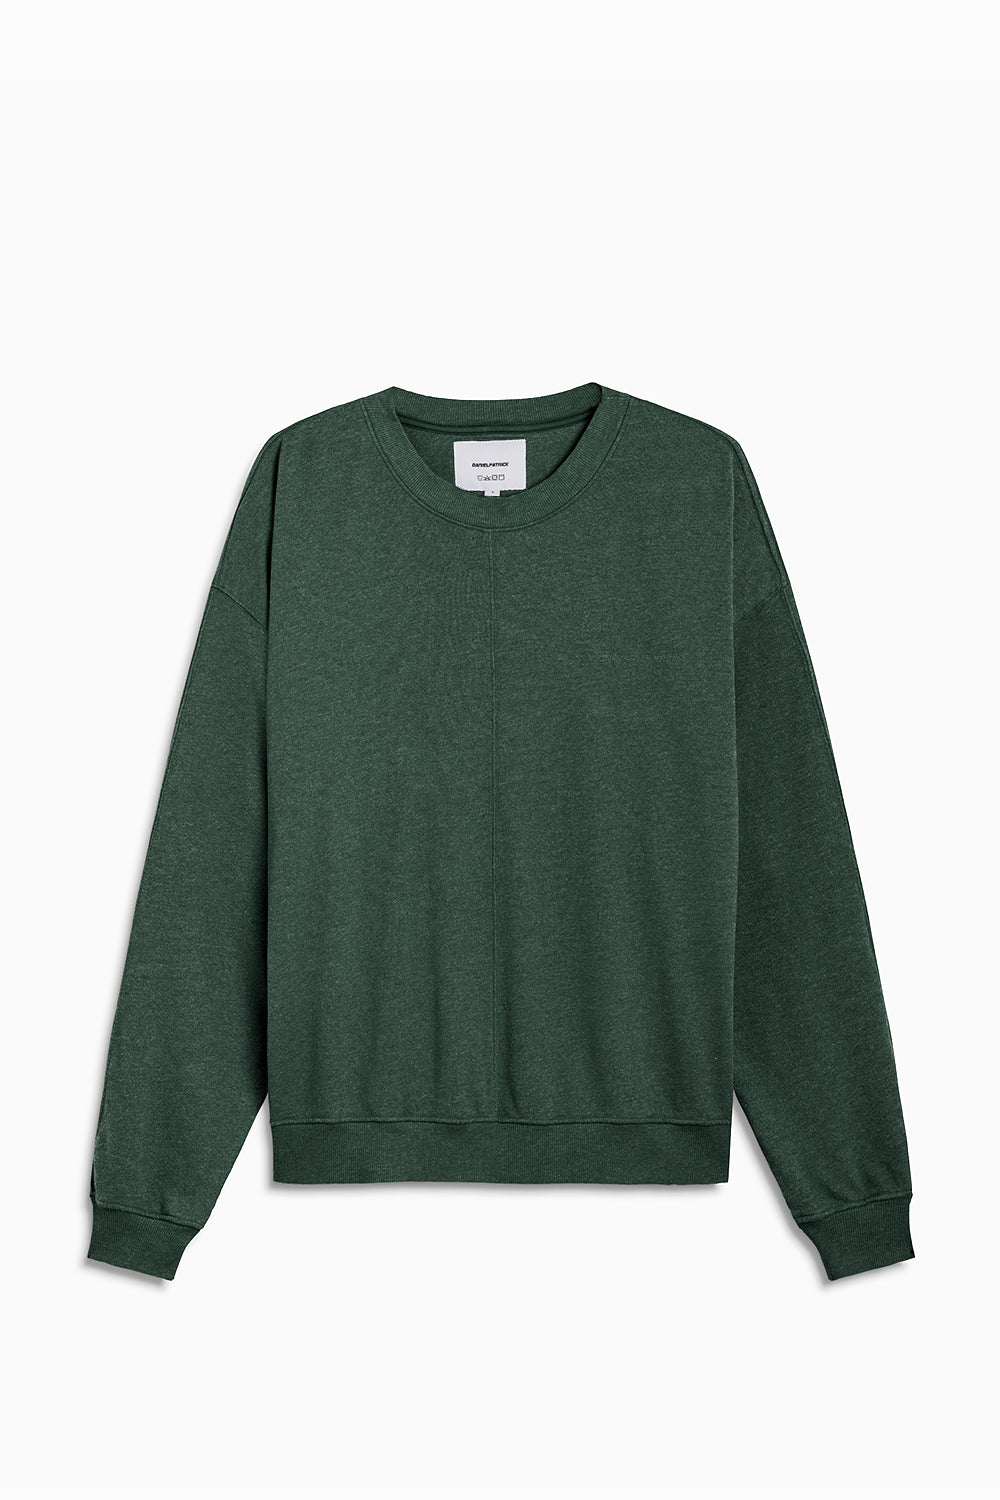 loop terry standard sweatshirt / hunter green